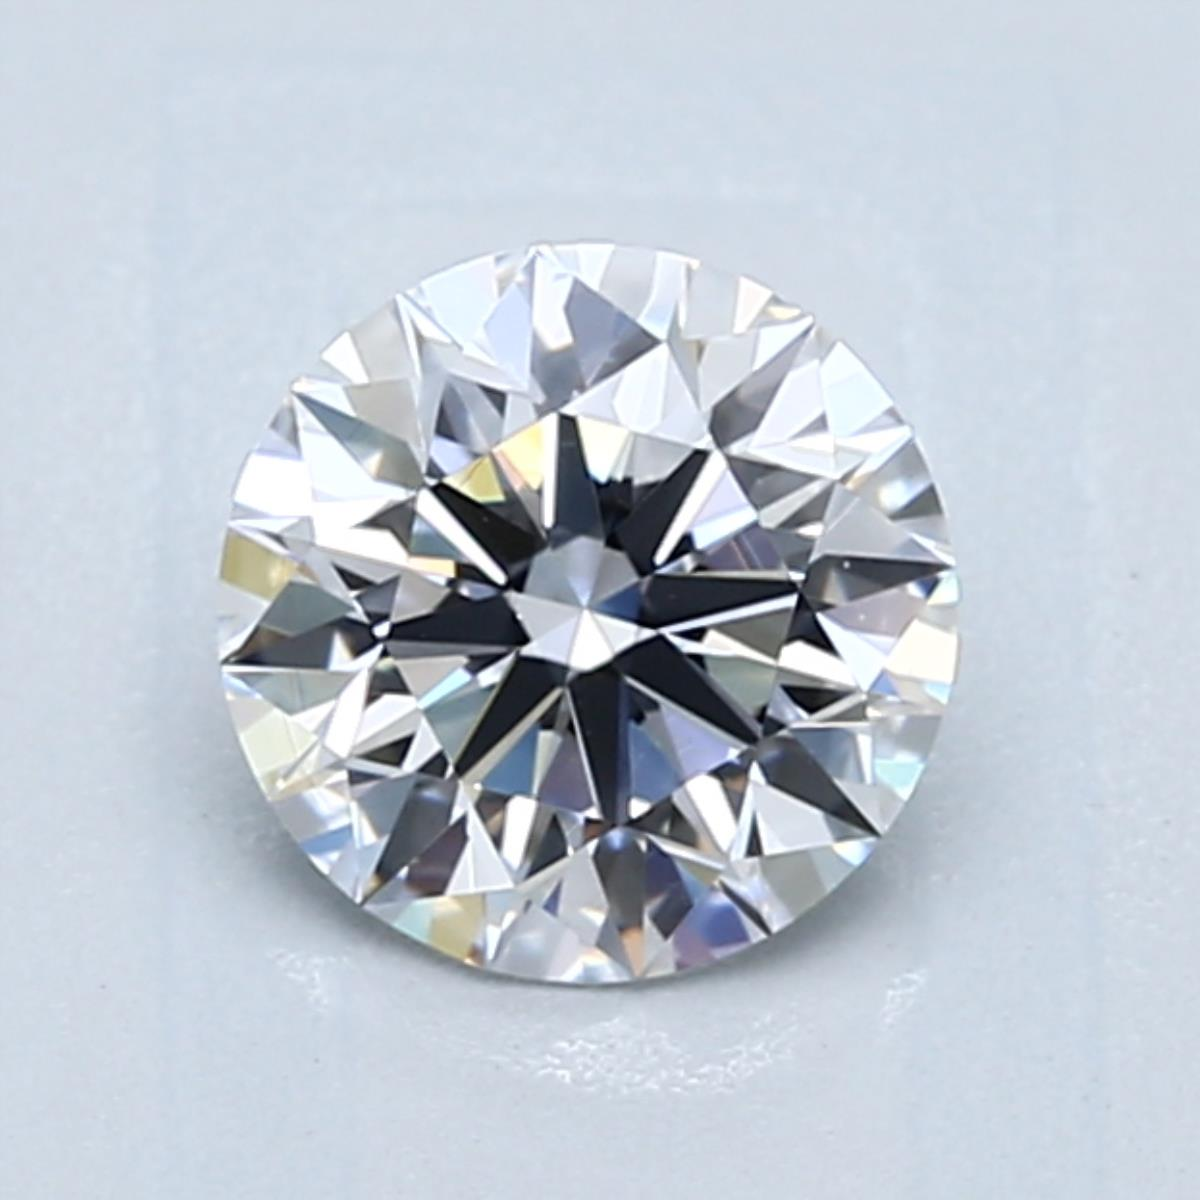 1.11 carat Round Diamond, Ideal cut, graded by the GIA laboratories.